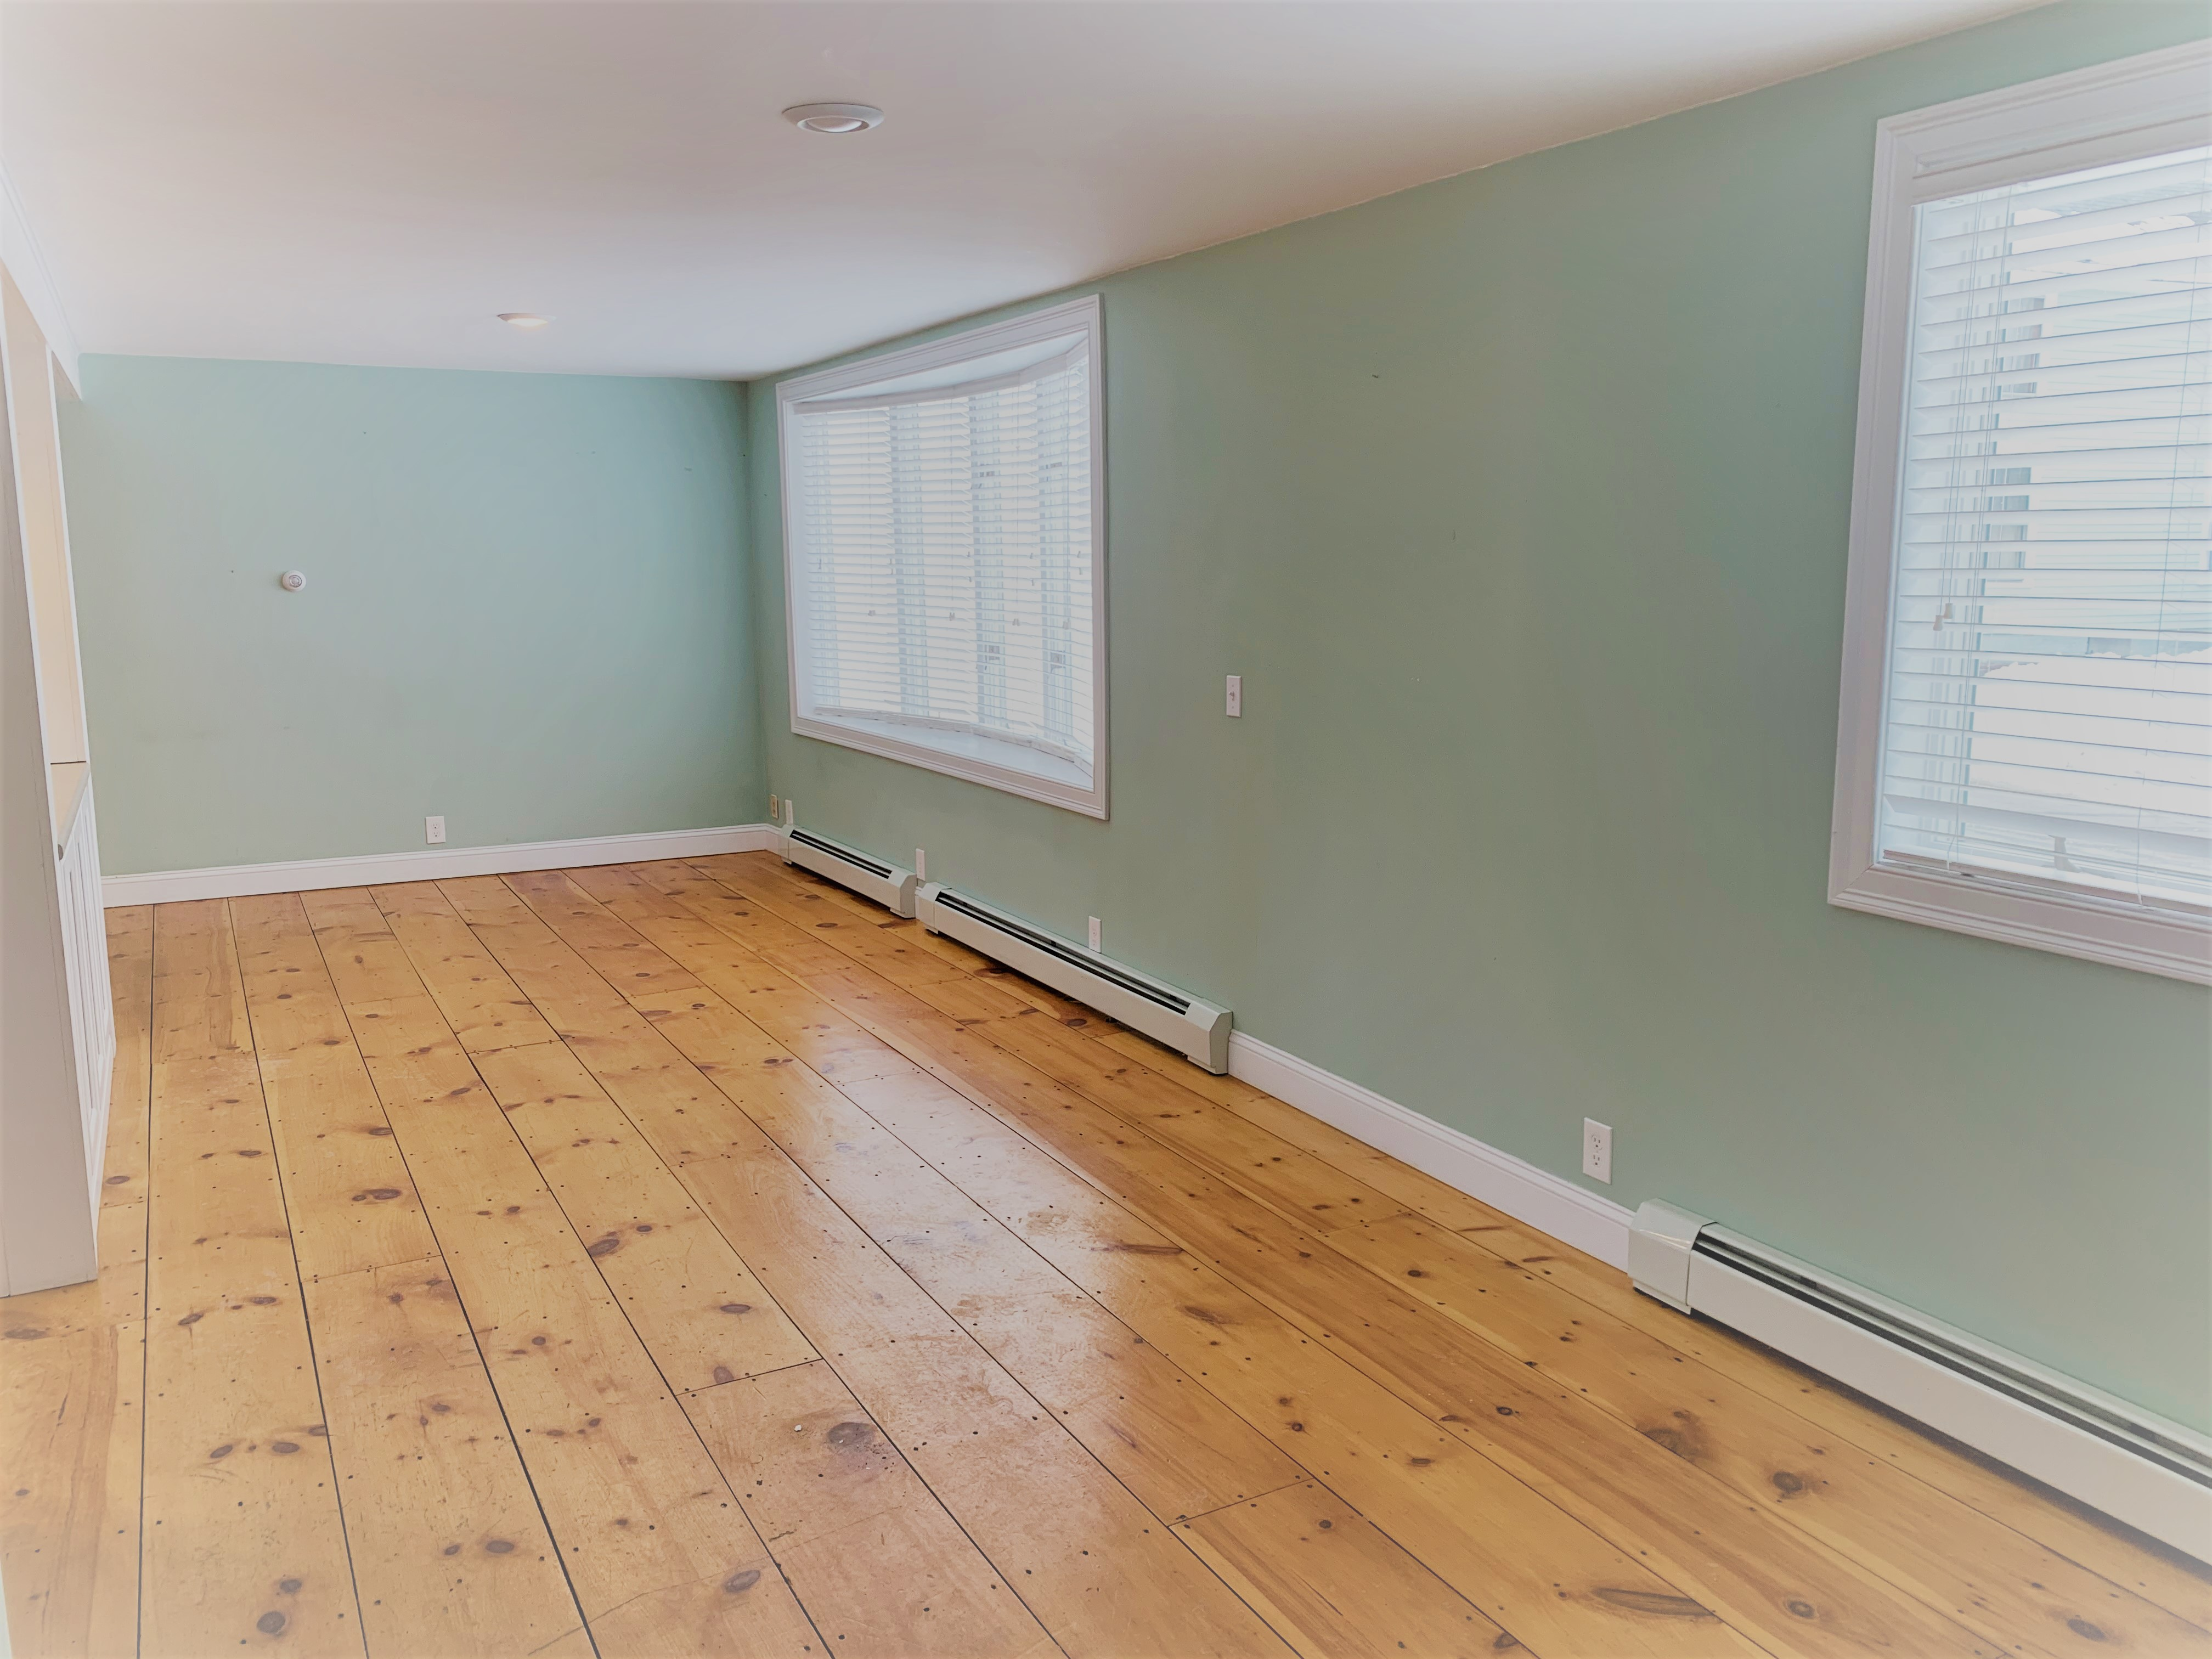 Living-Dining room pic 2